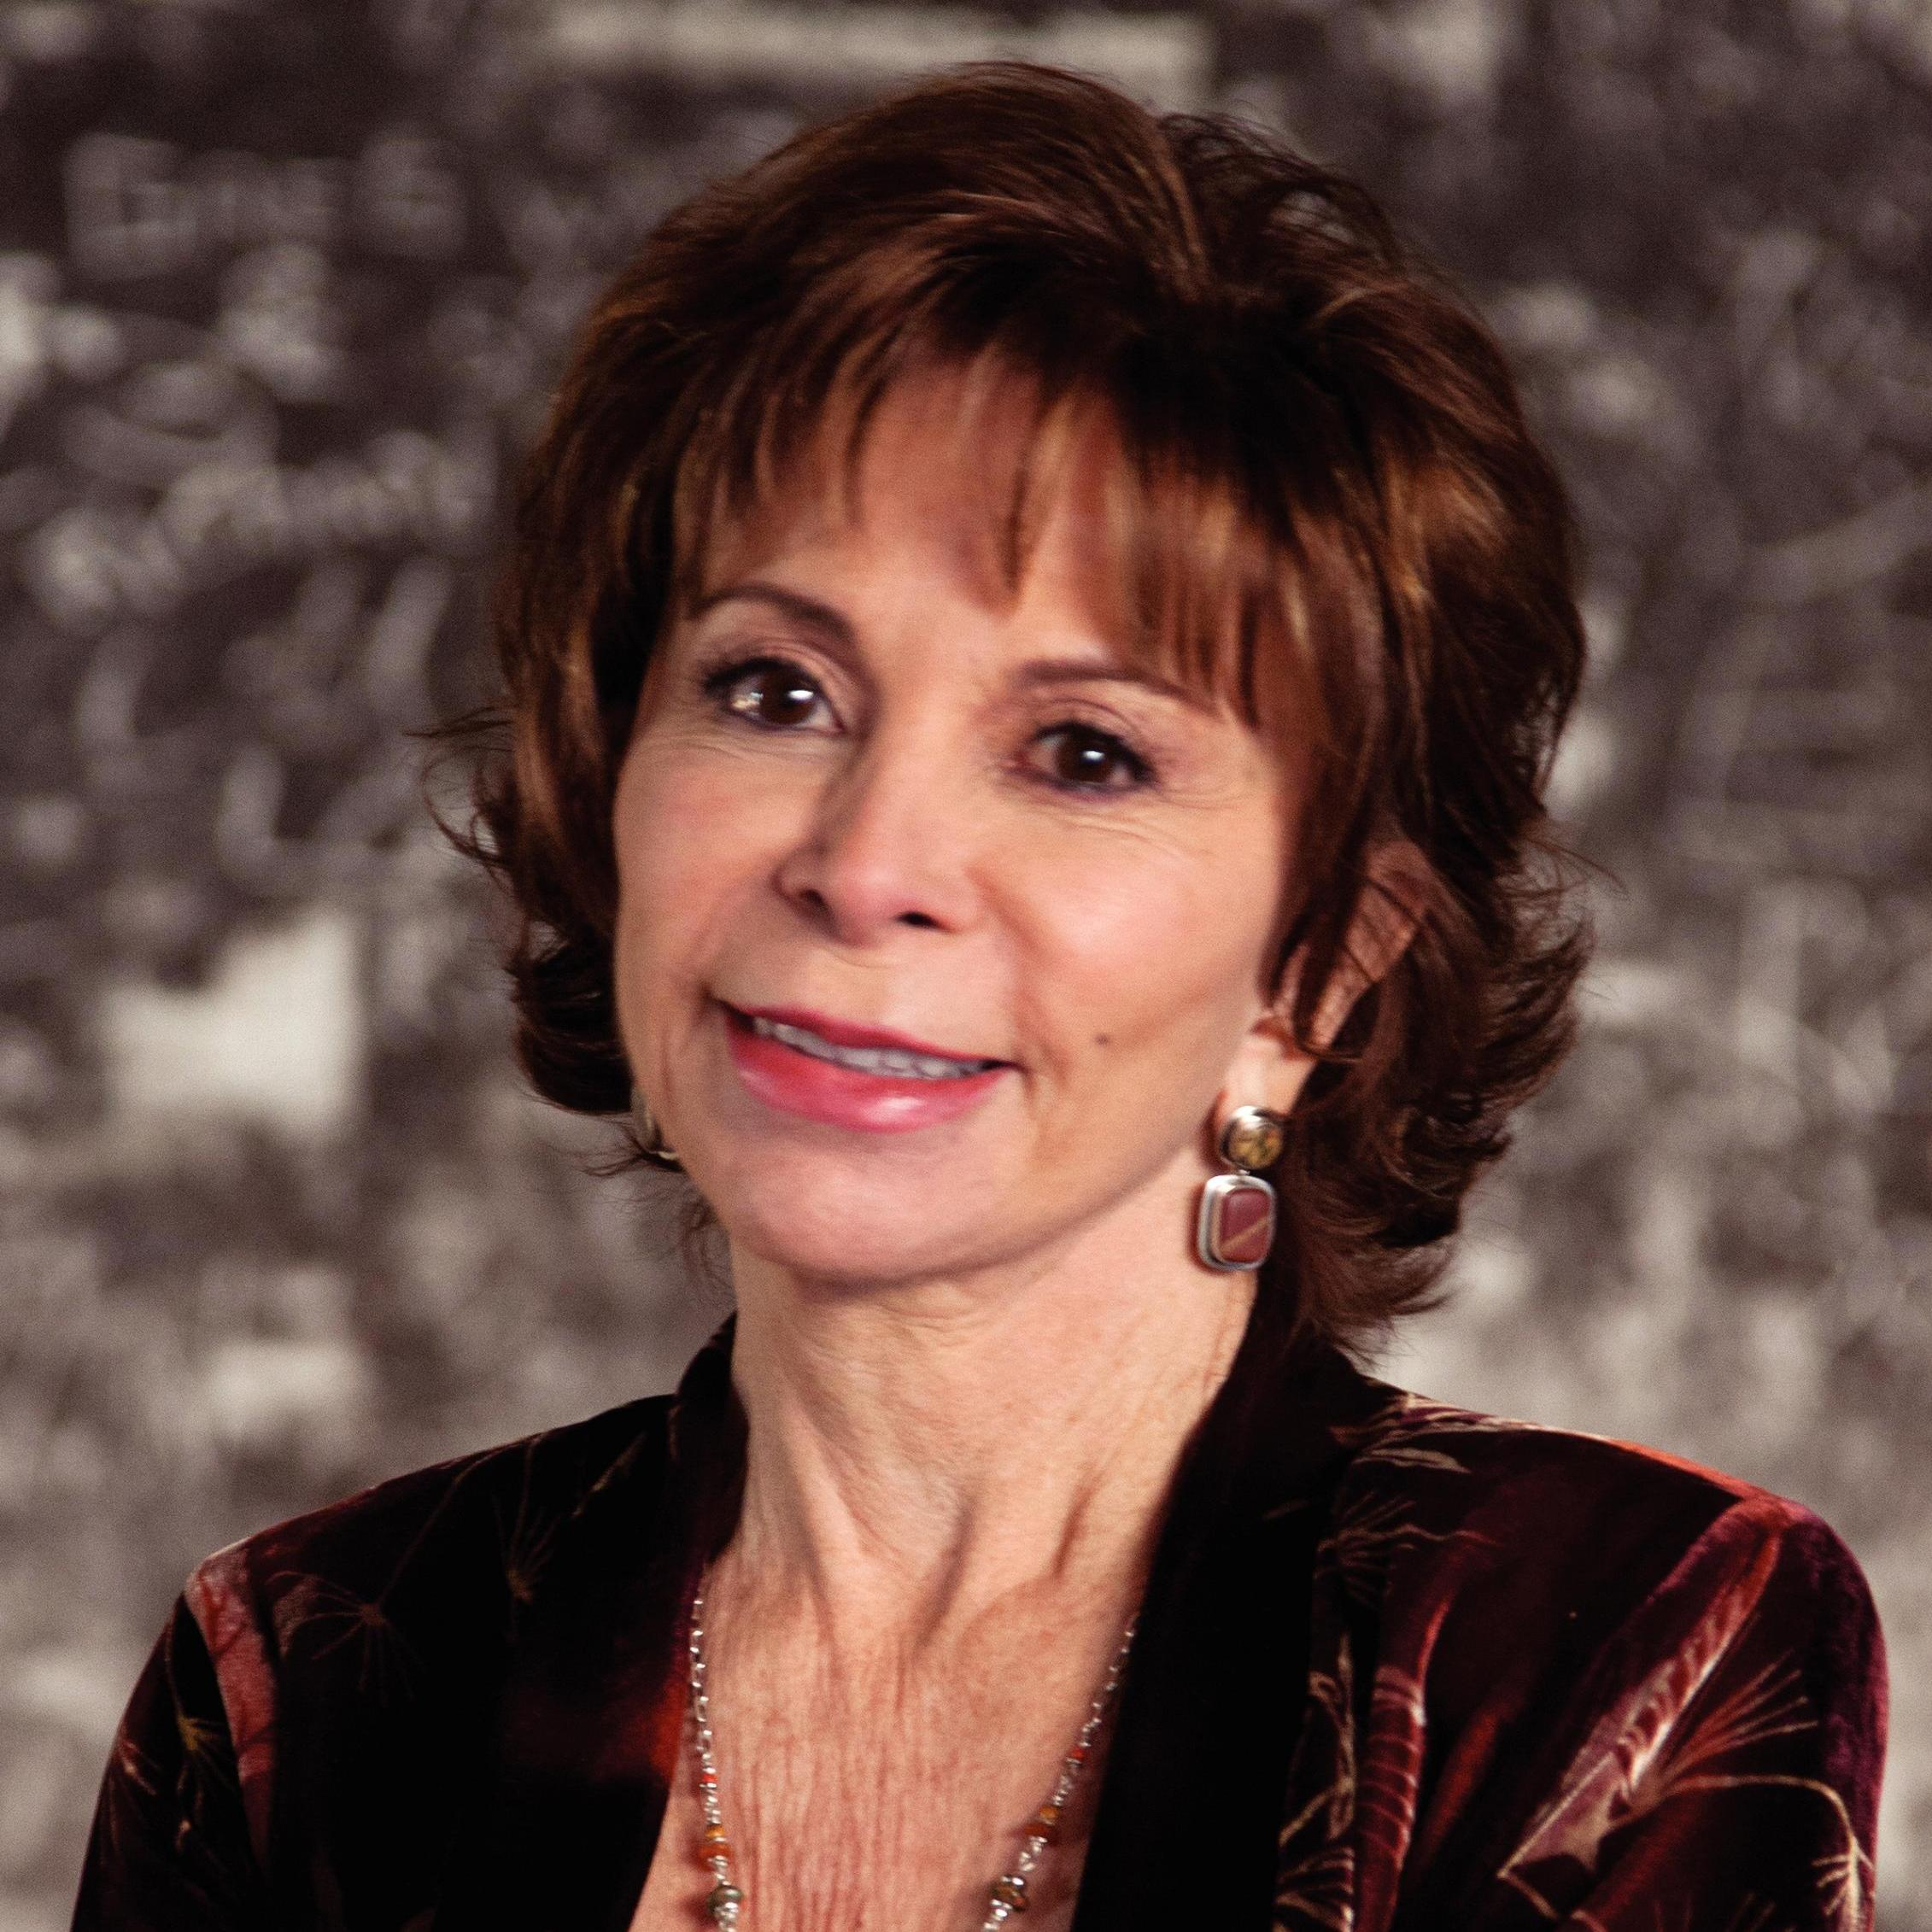 Chilean writer Isabel Allende is the author of 20 books, including The House of Spirits and City of the Beasts.